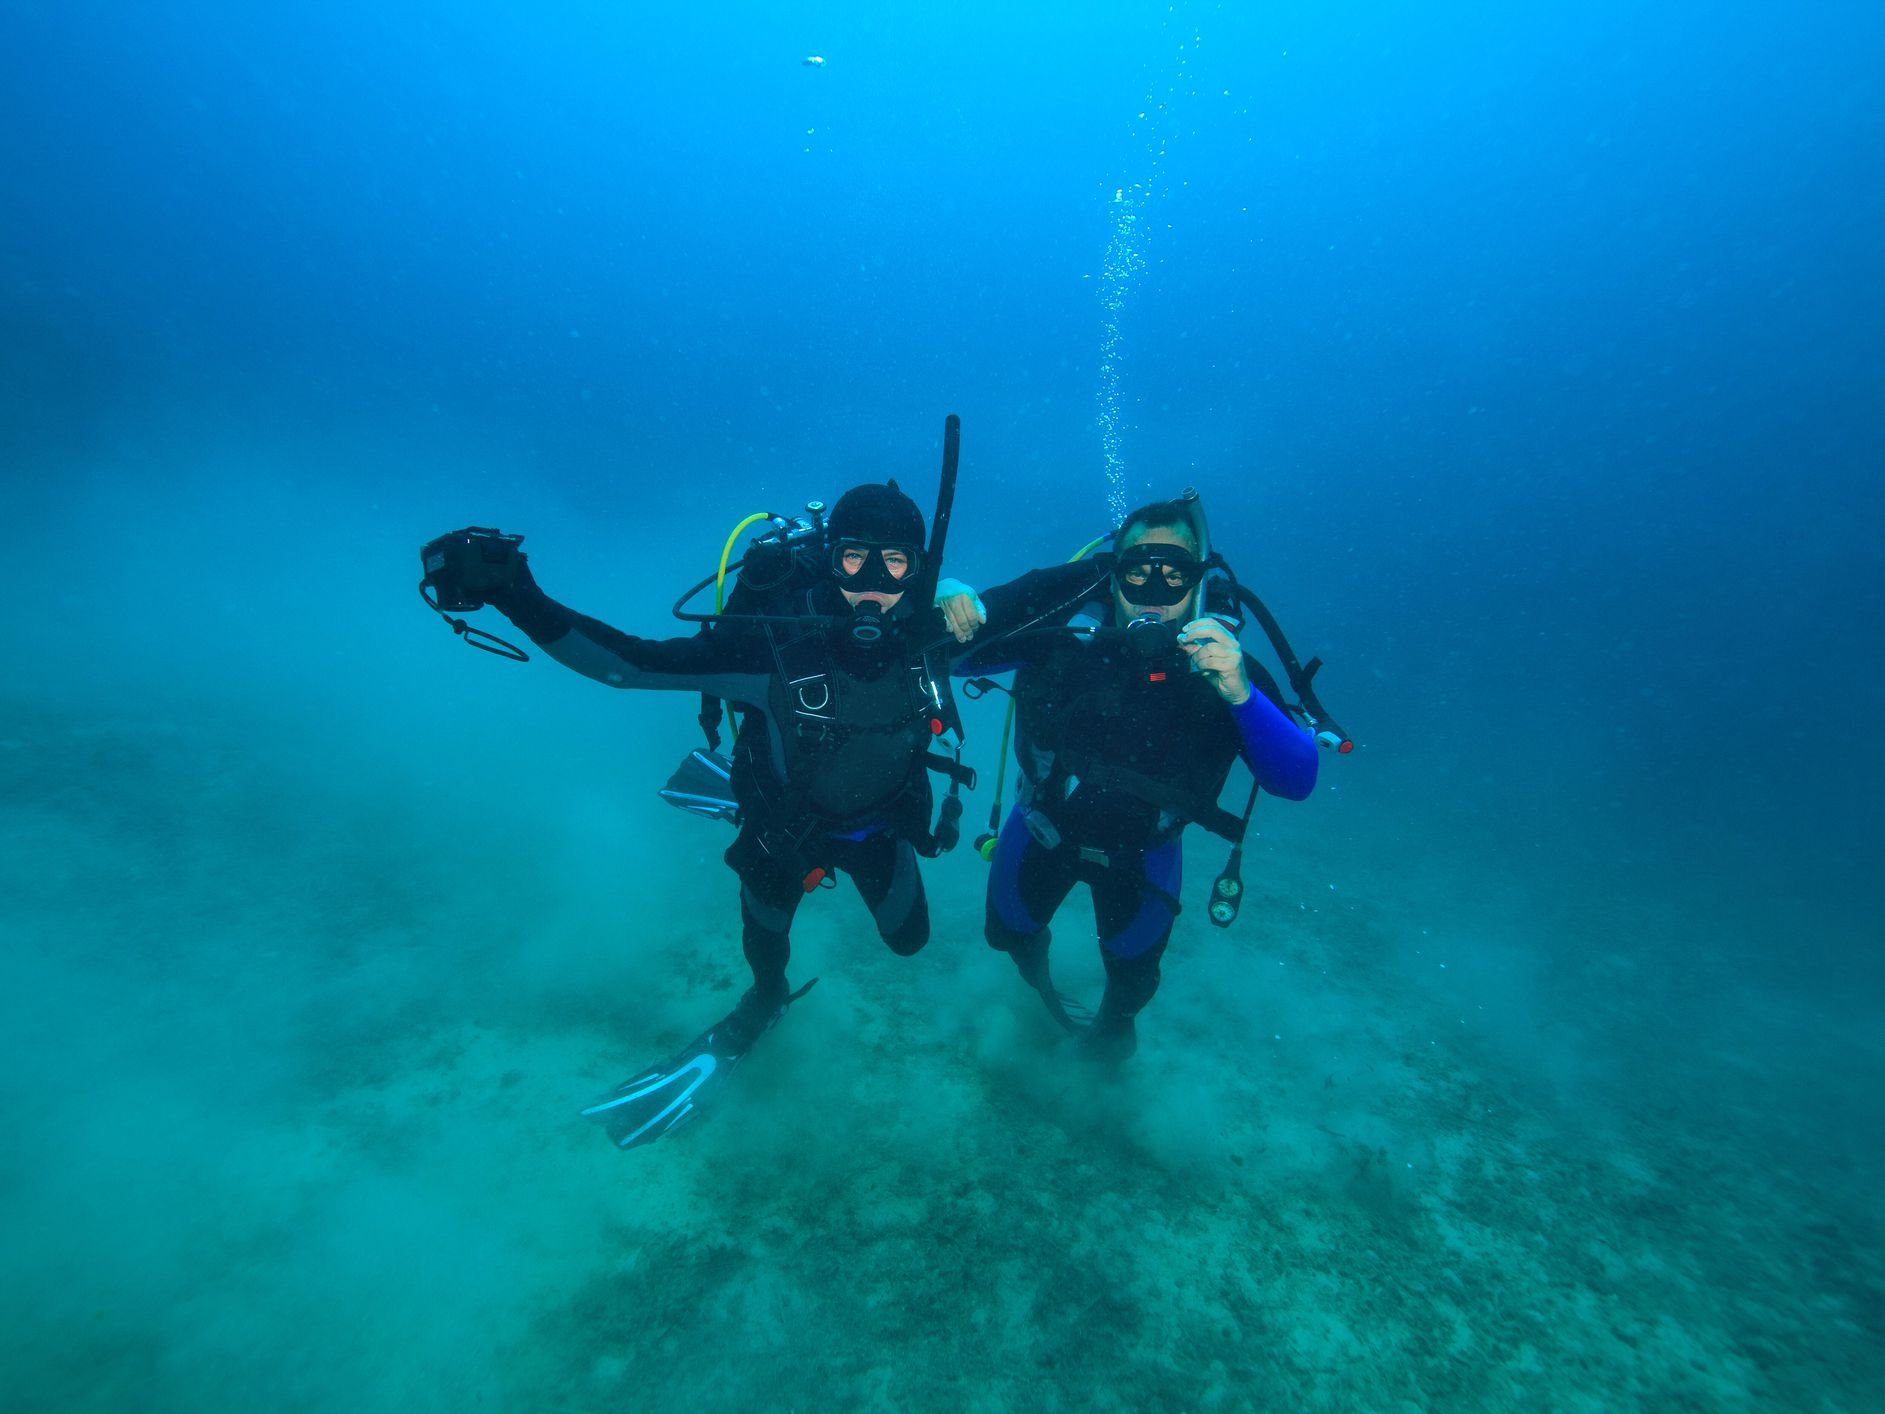 PADI's 4 Emergency Ascent Procedures for Low/Out of Air Situations